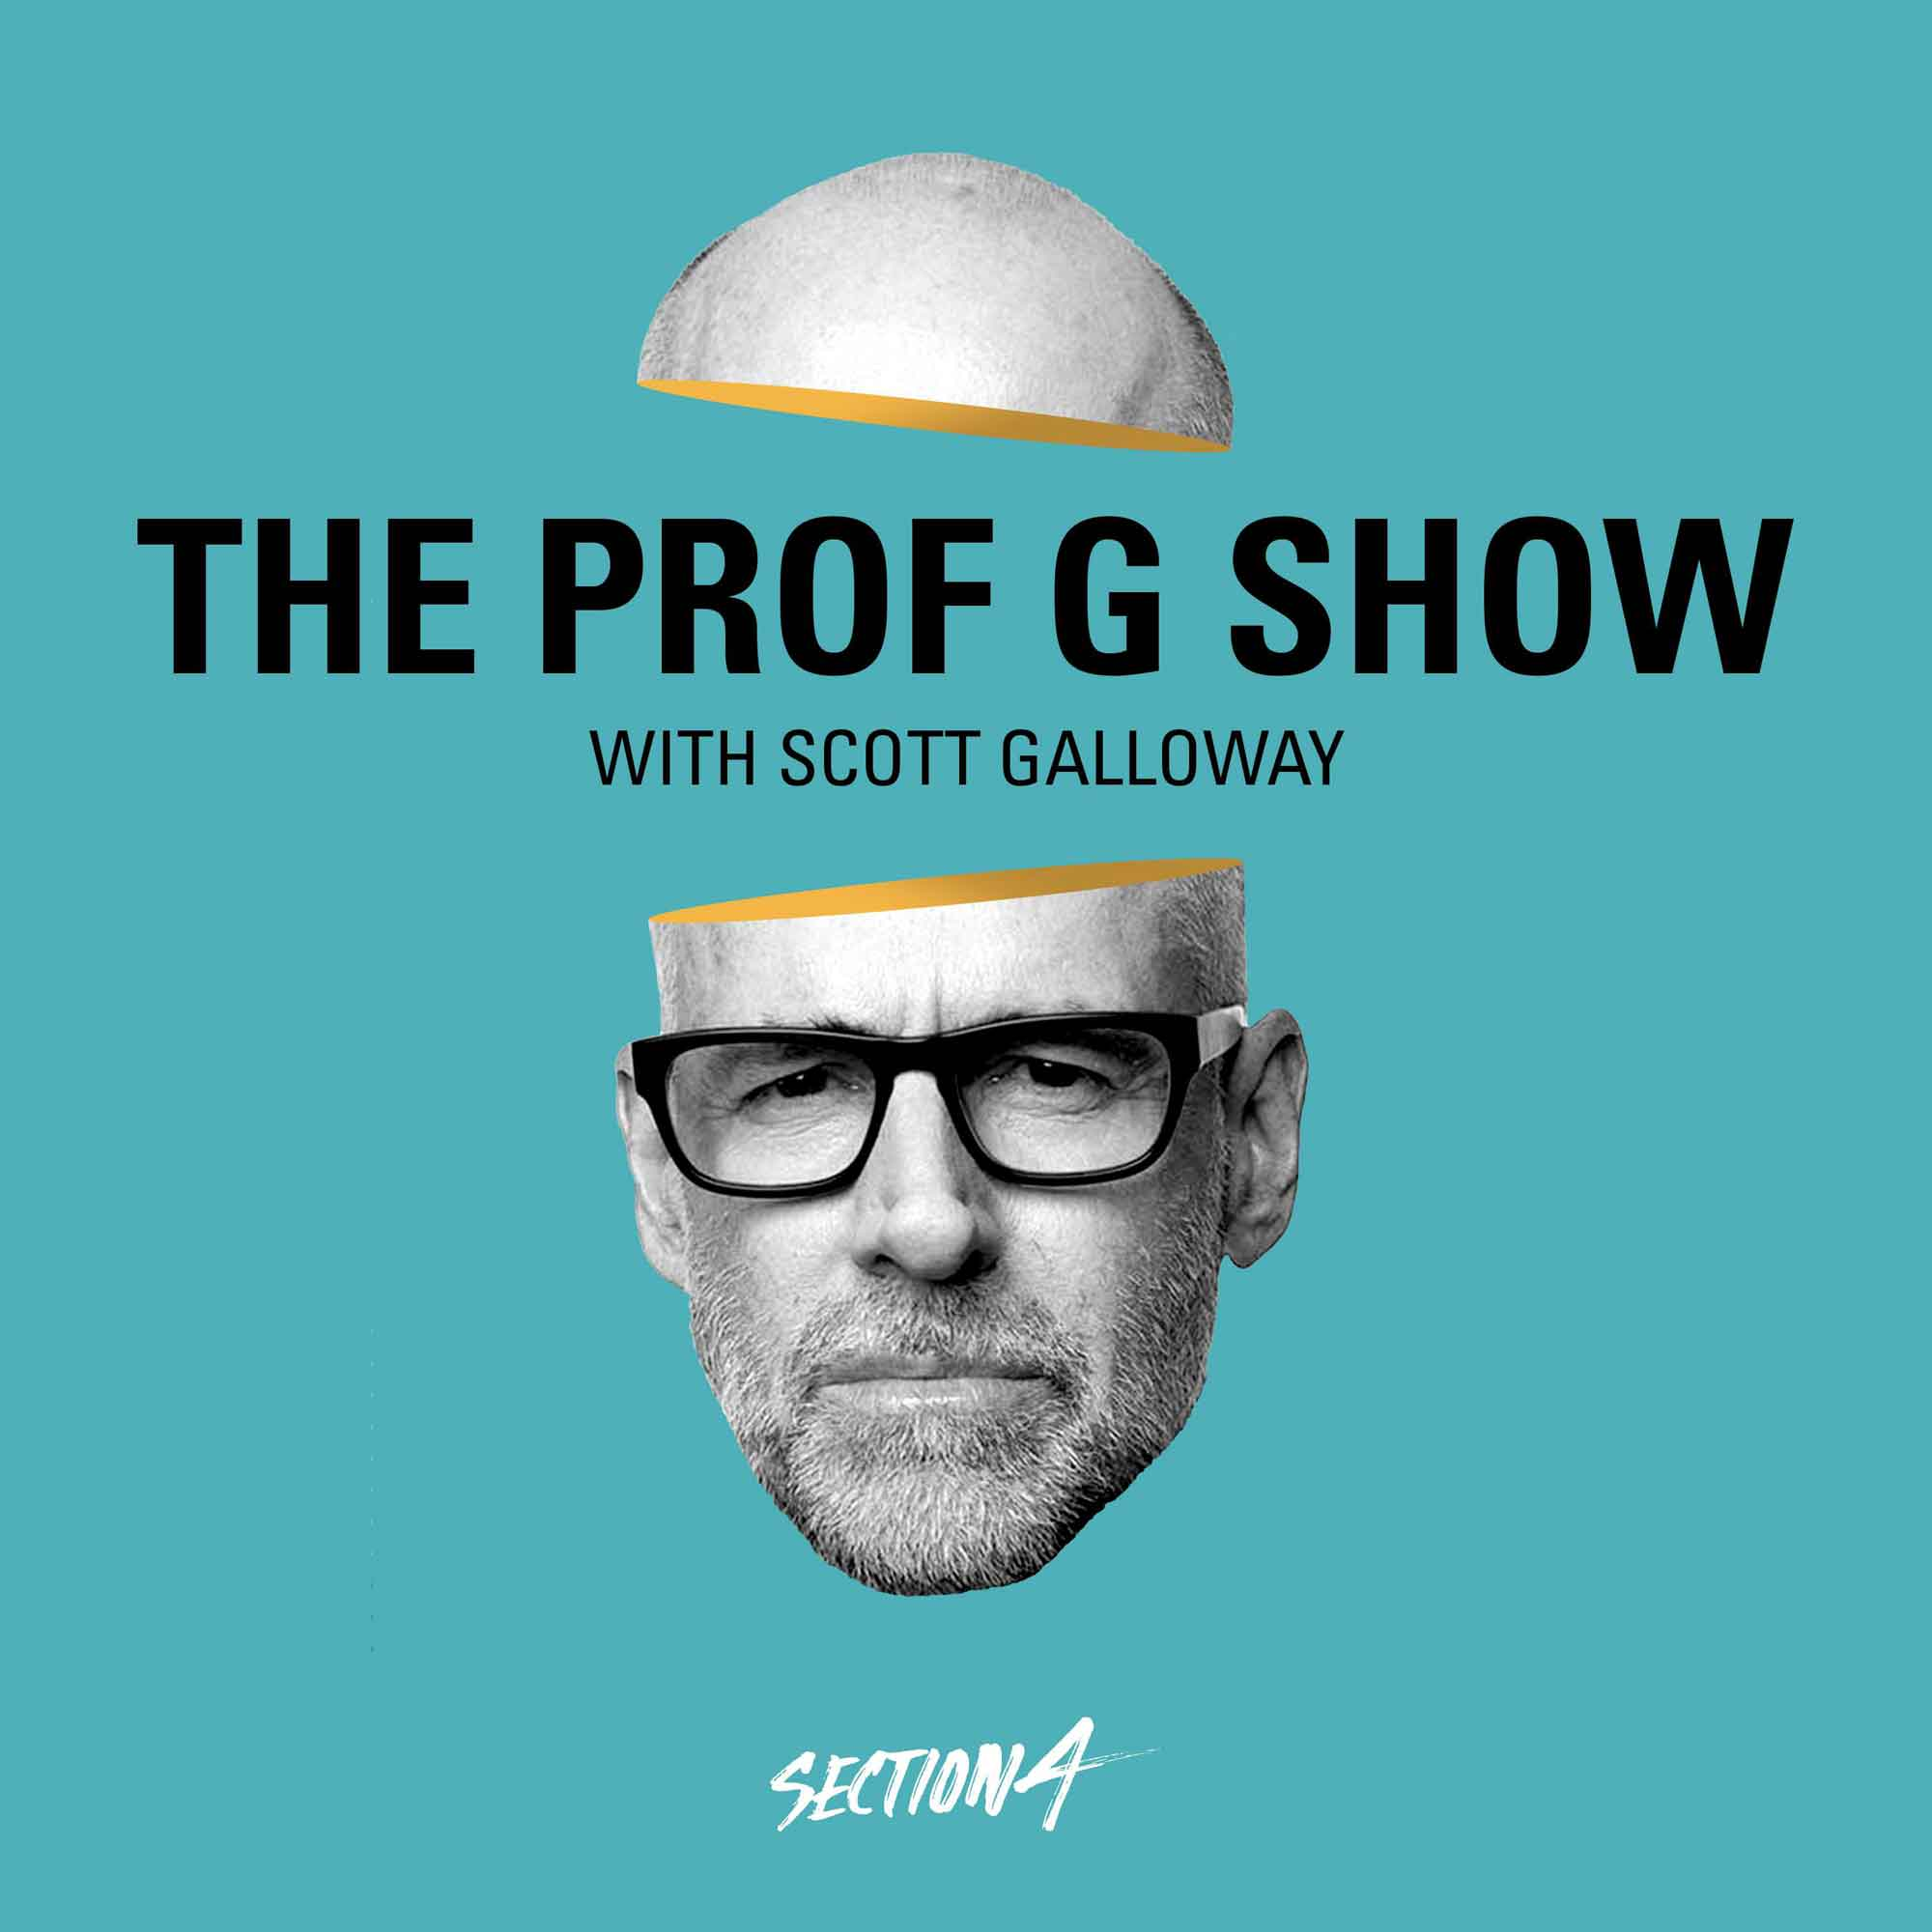 WS: The Prof G Show